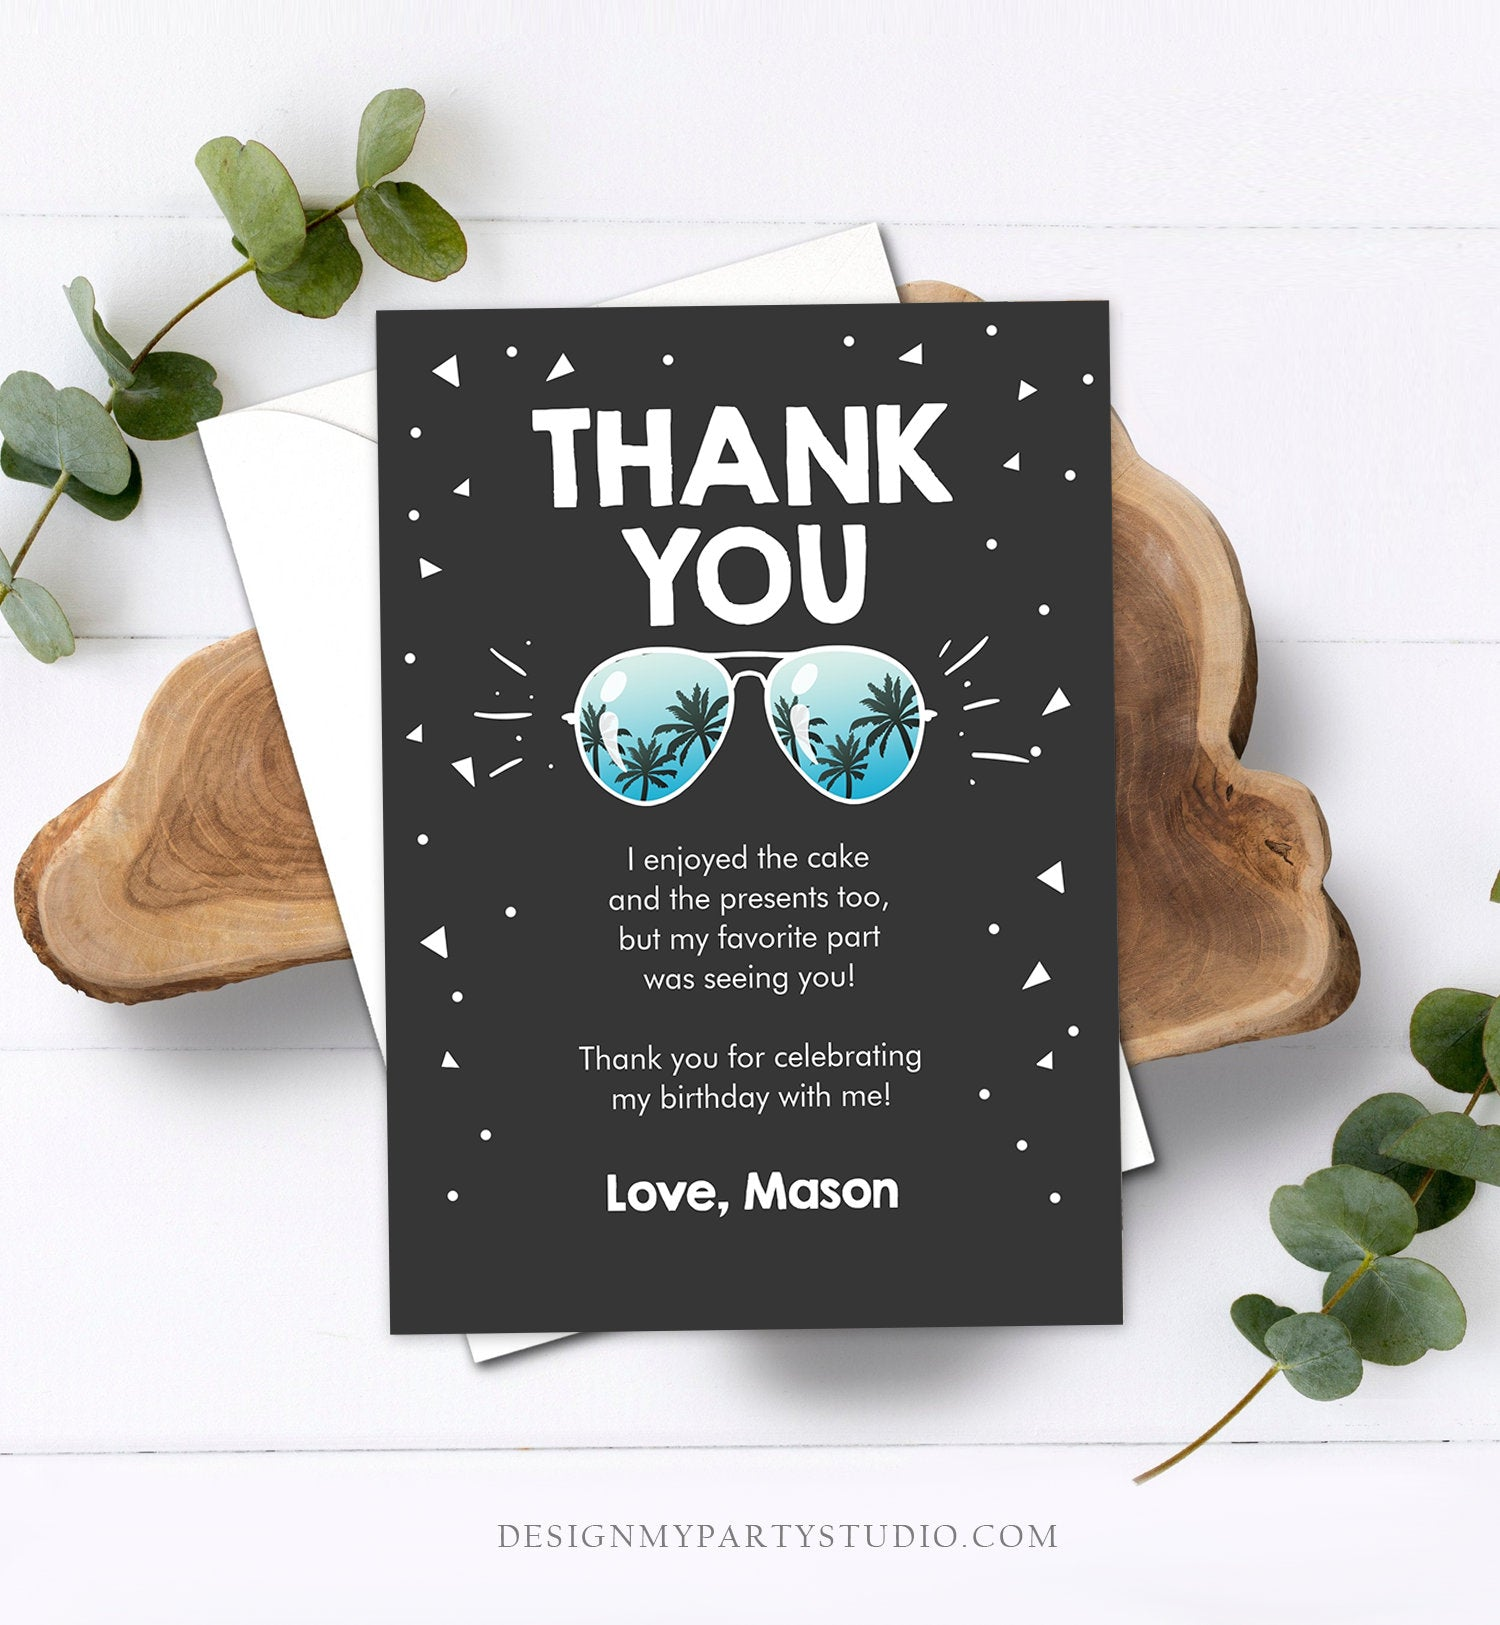 Editable Thank You Card Two Cool Birthday Boy Sunglasses Palm Second Birthday Party Note 2nd Chalk Download Corjl Template Printable 0136